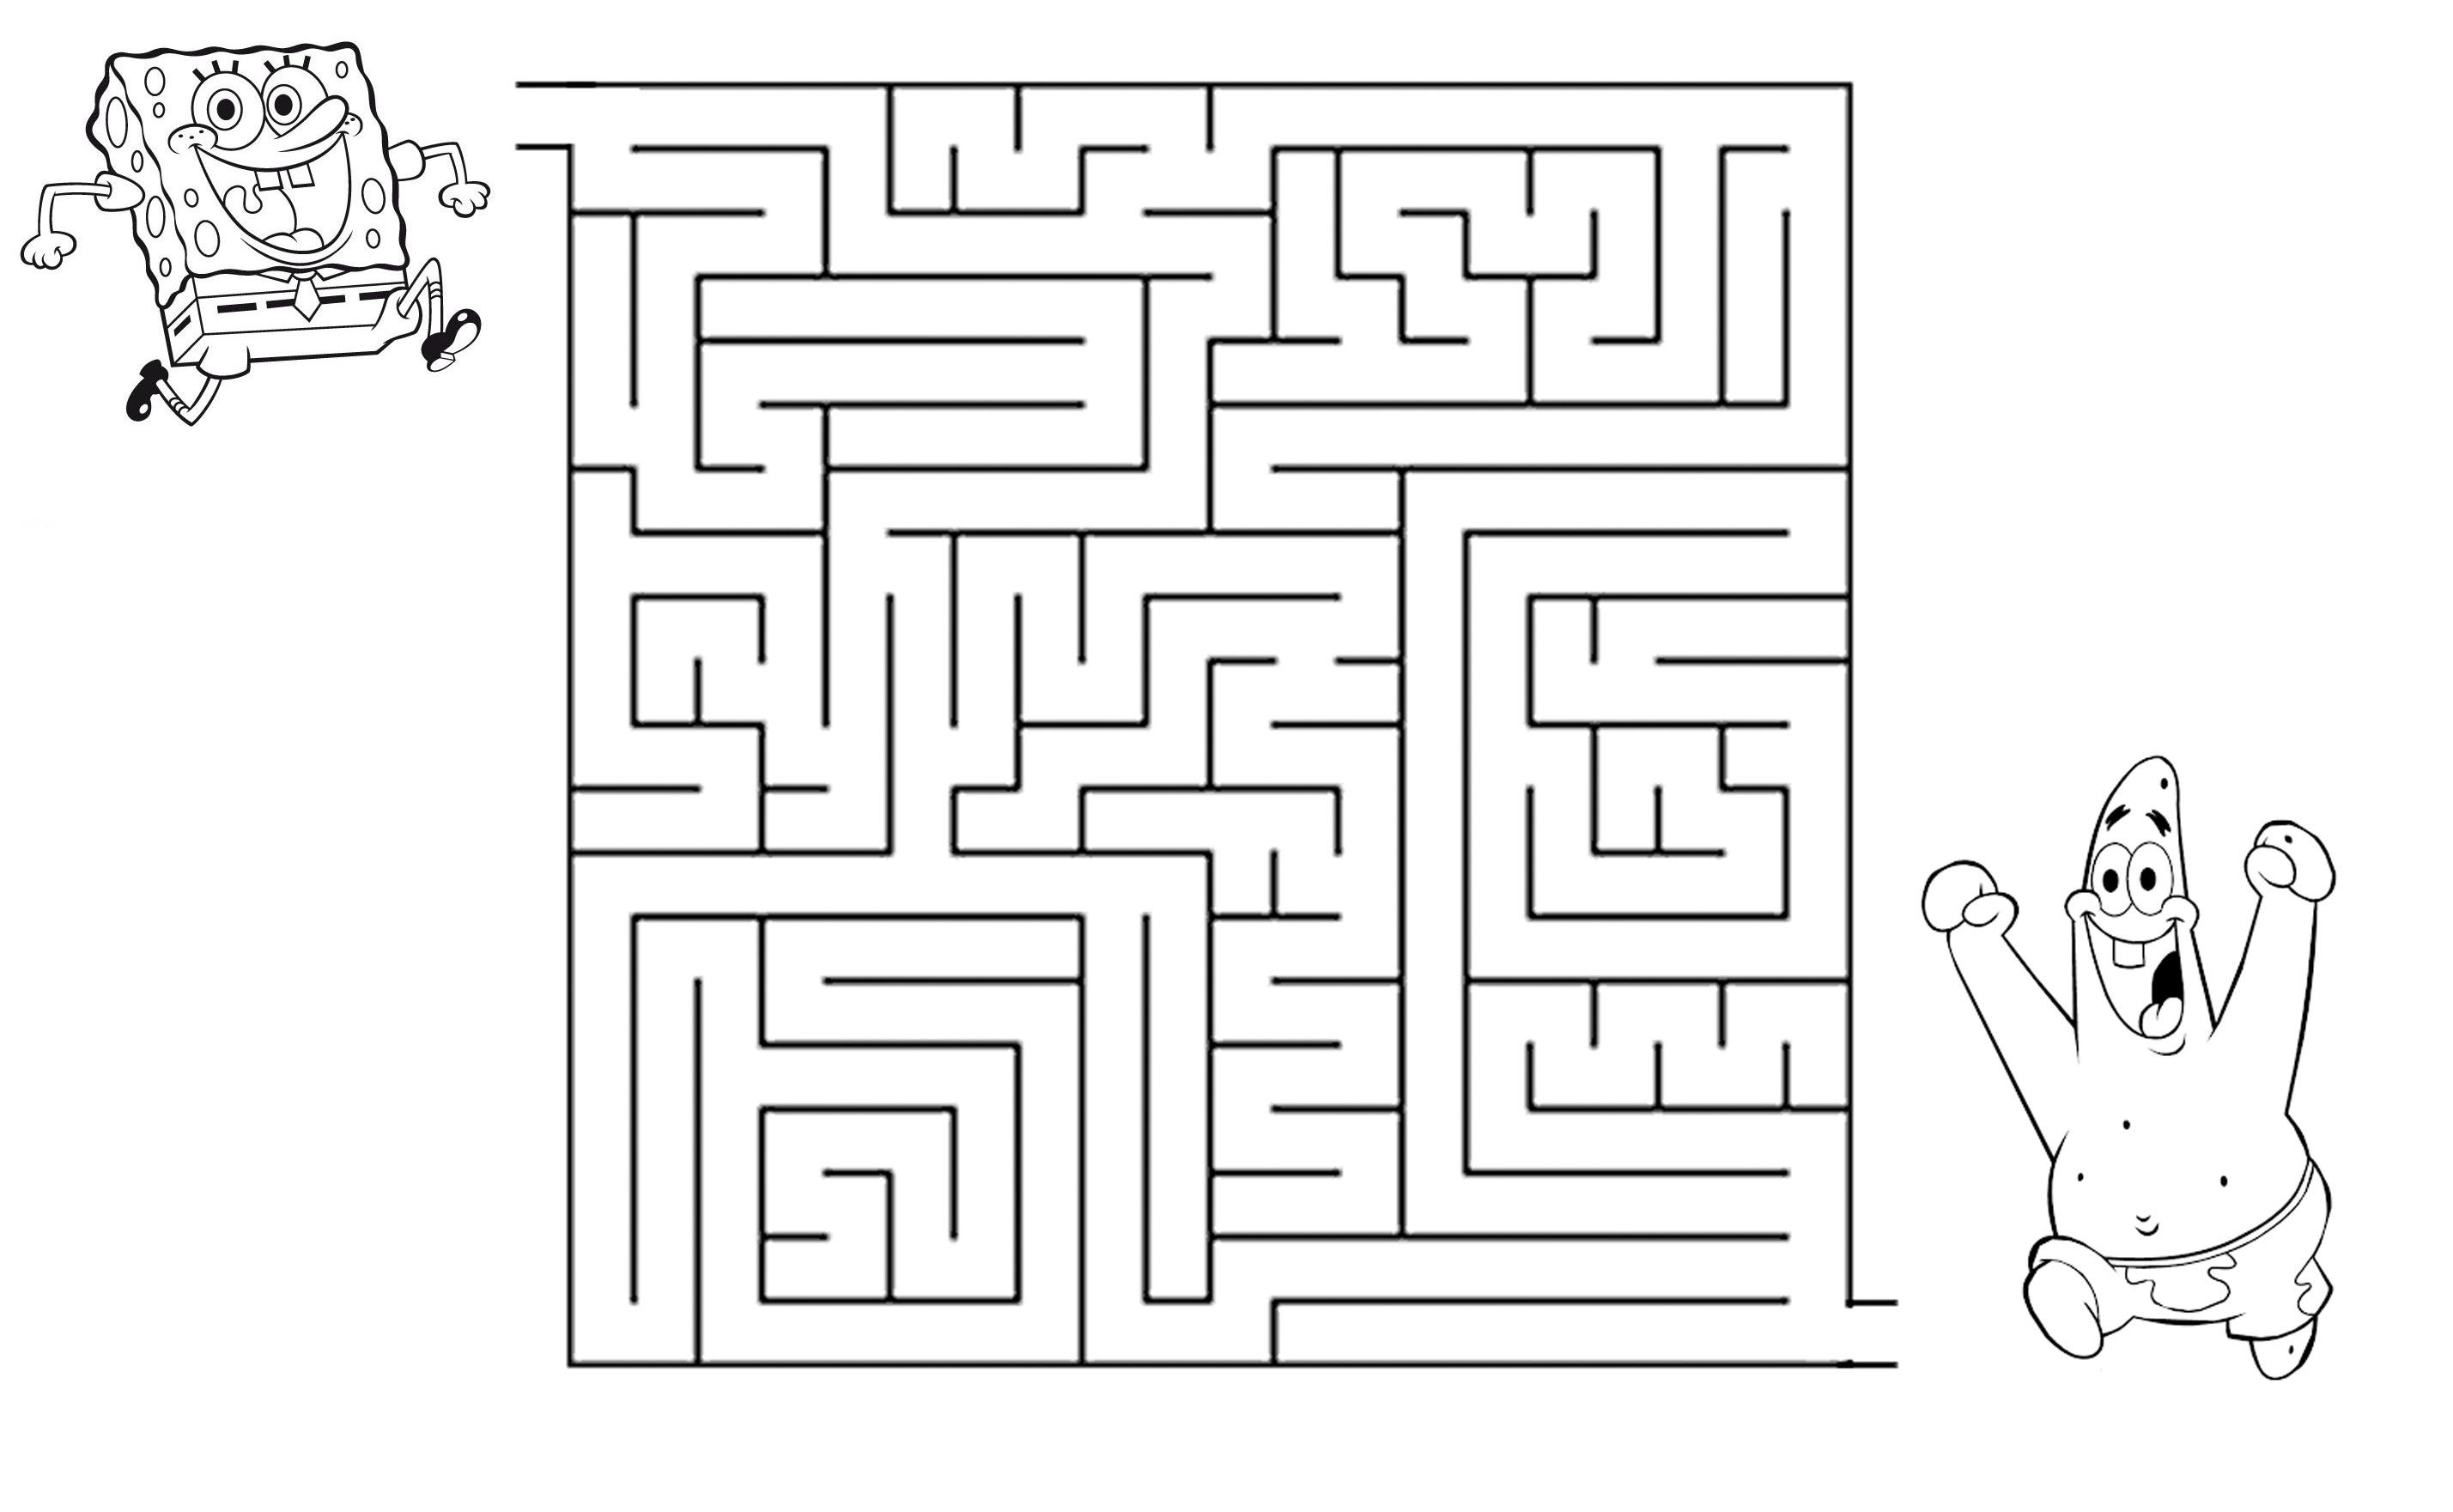 Help Spongebob Through The Maze To Find Patrick